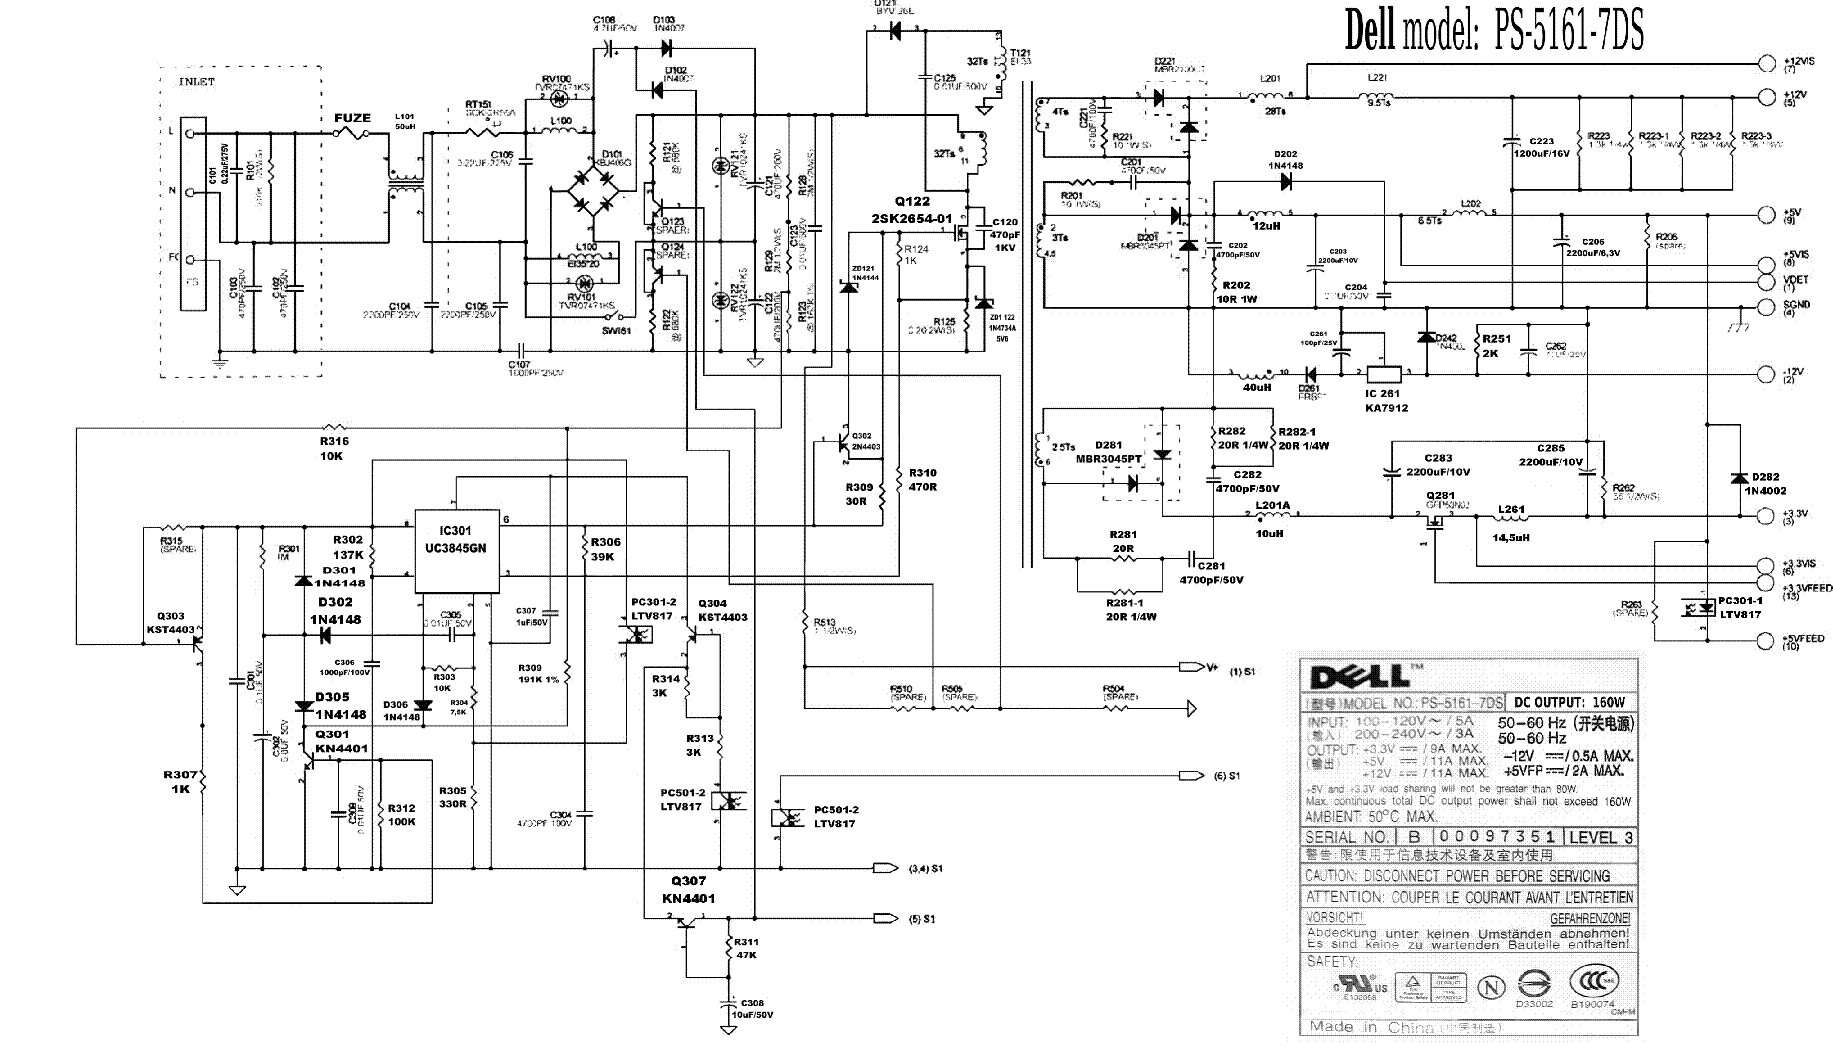 Power Supply: Power Supply Schematic